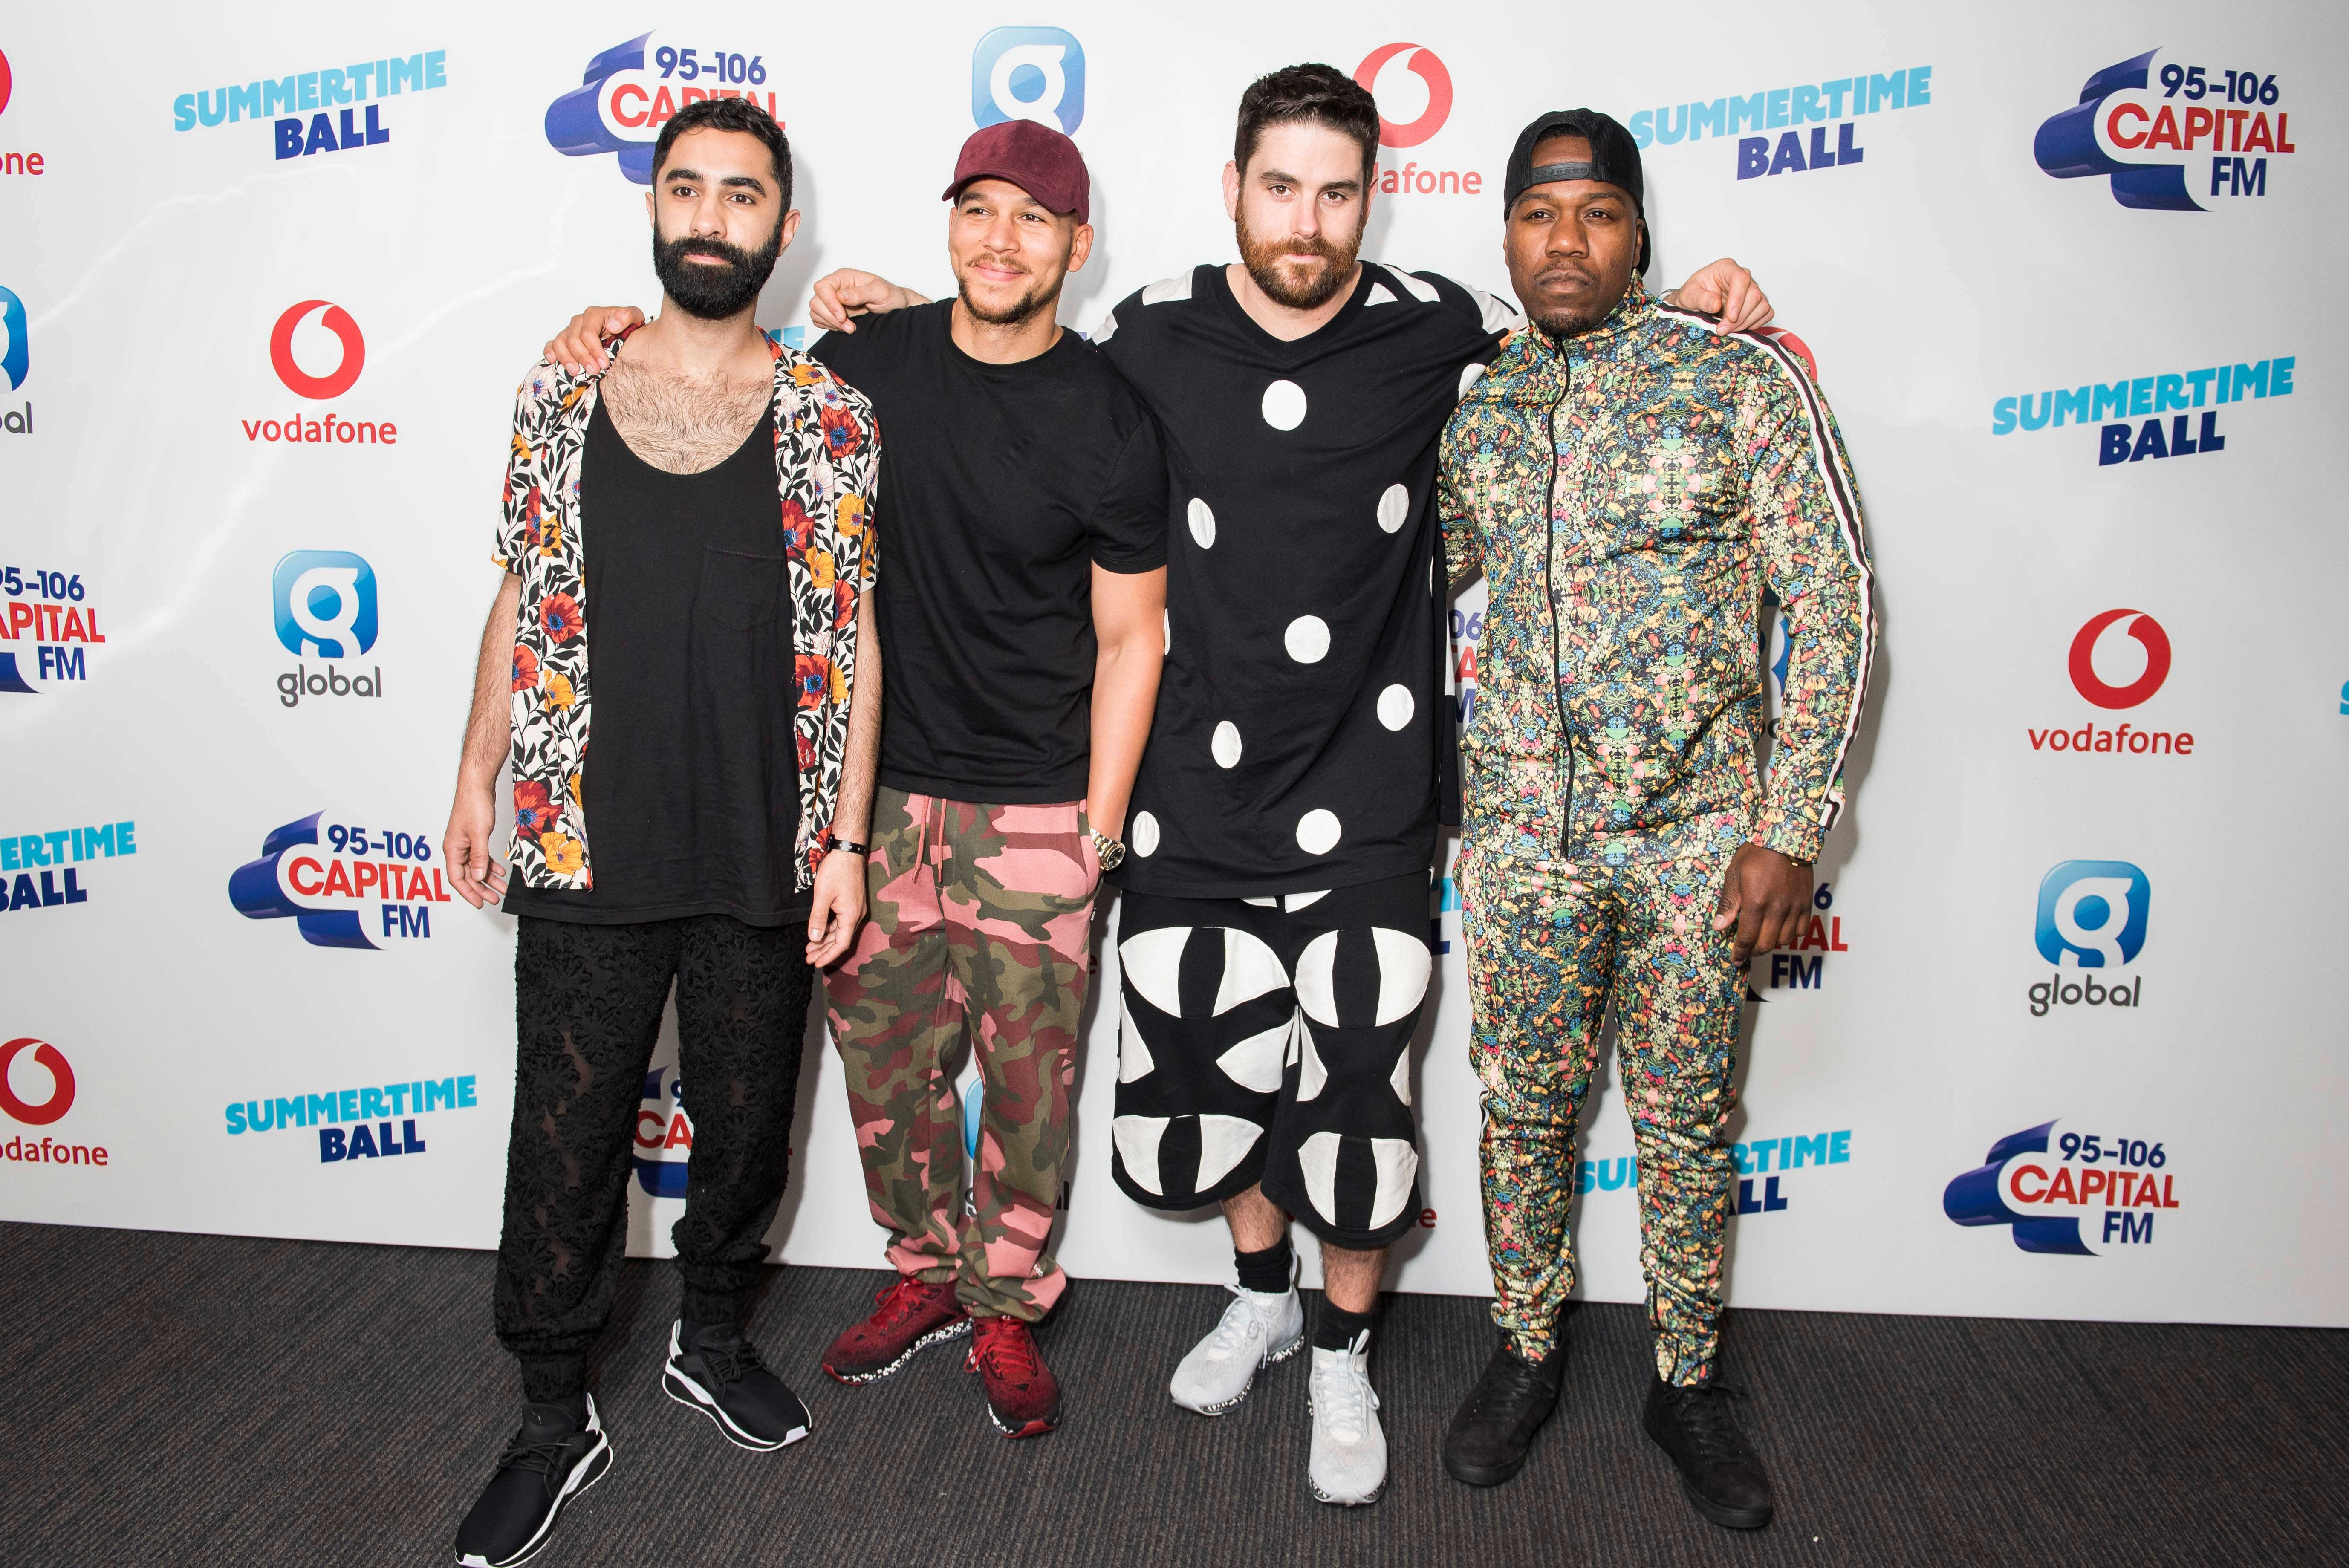 Rudimental Summertime Ball 2018 Red Carpet